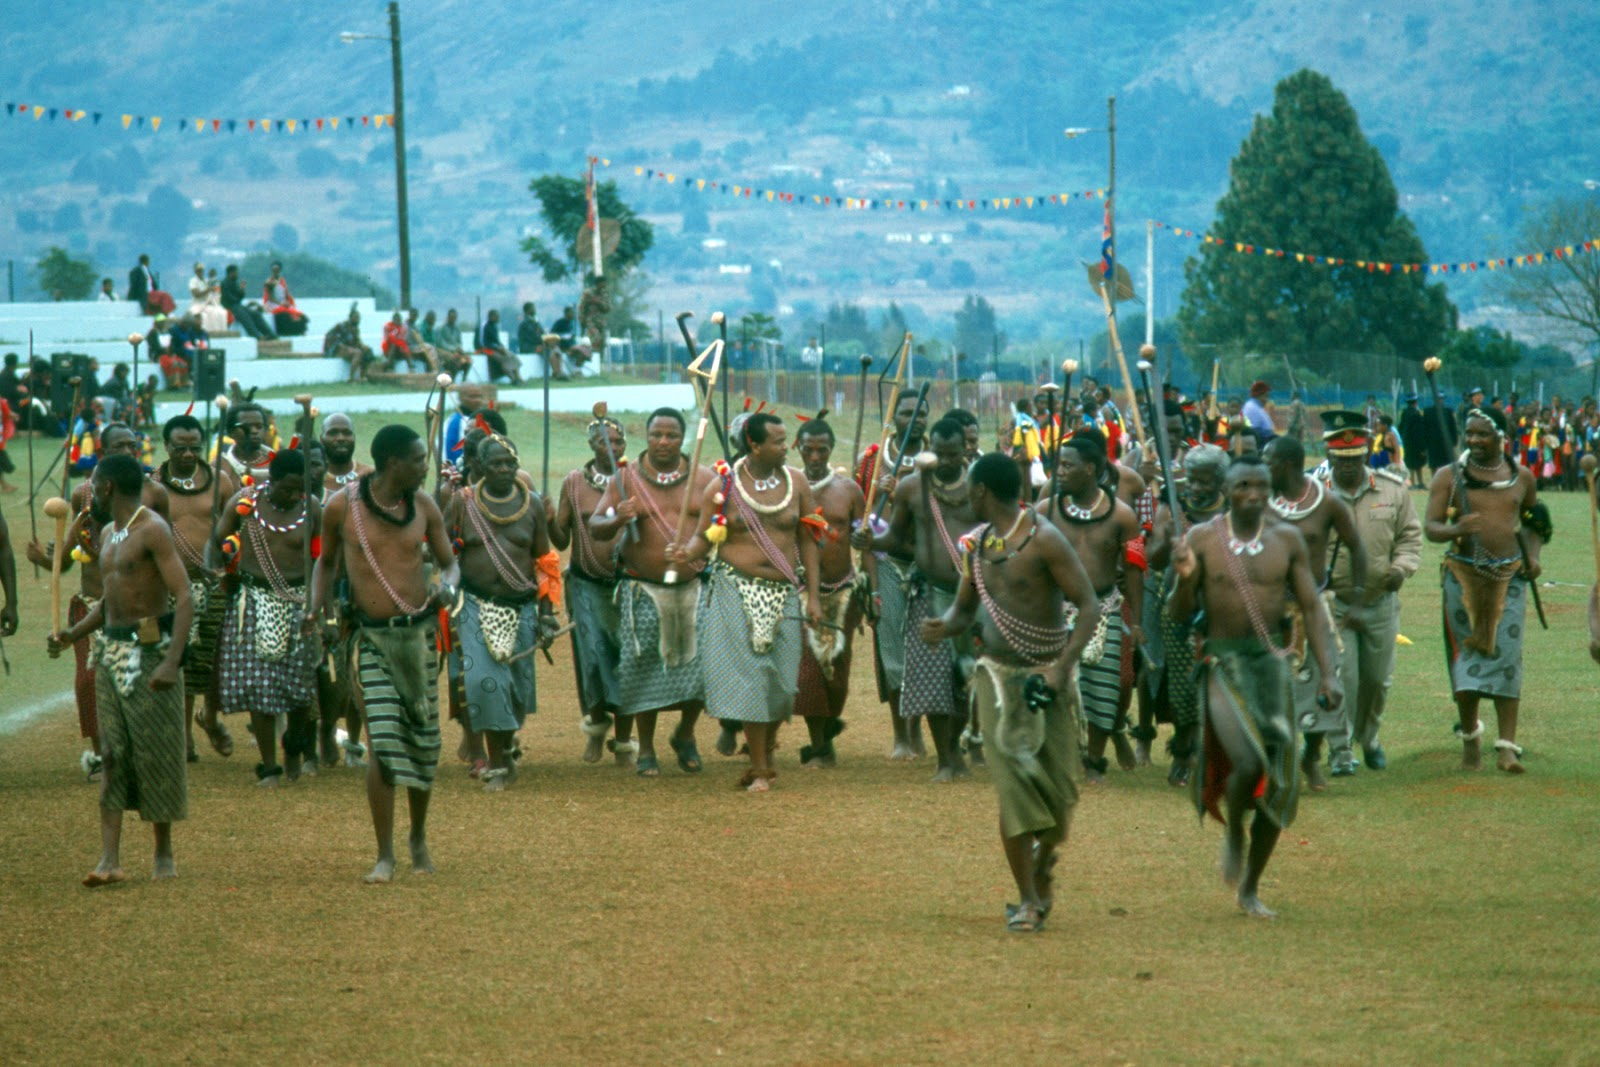 Swaziland The Dates Of The Reed Dance 2014 Have Been Announced